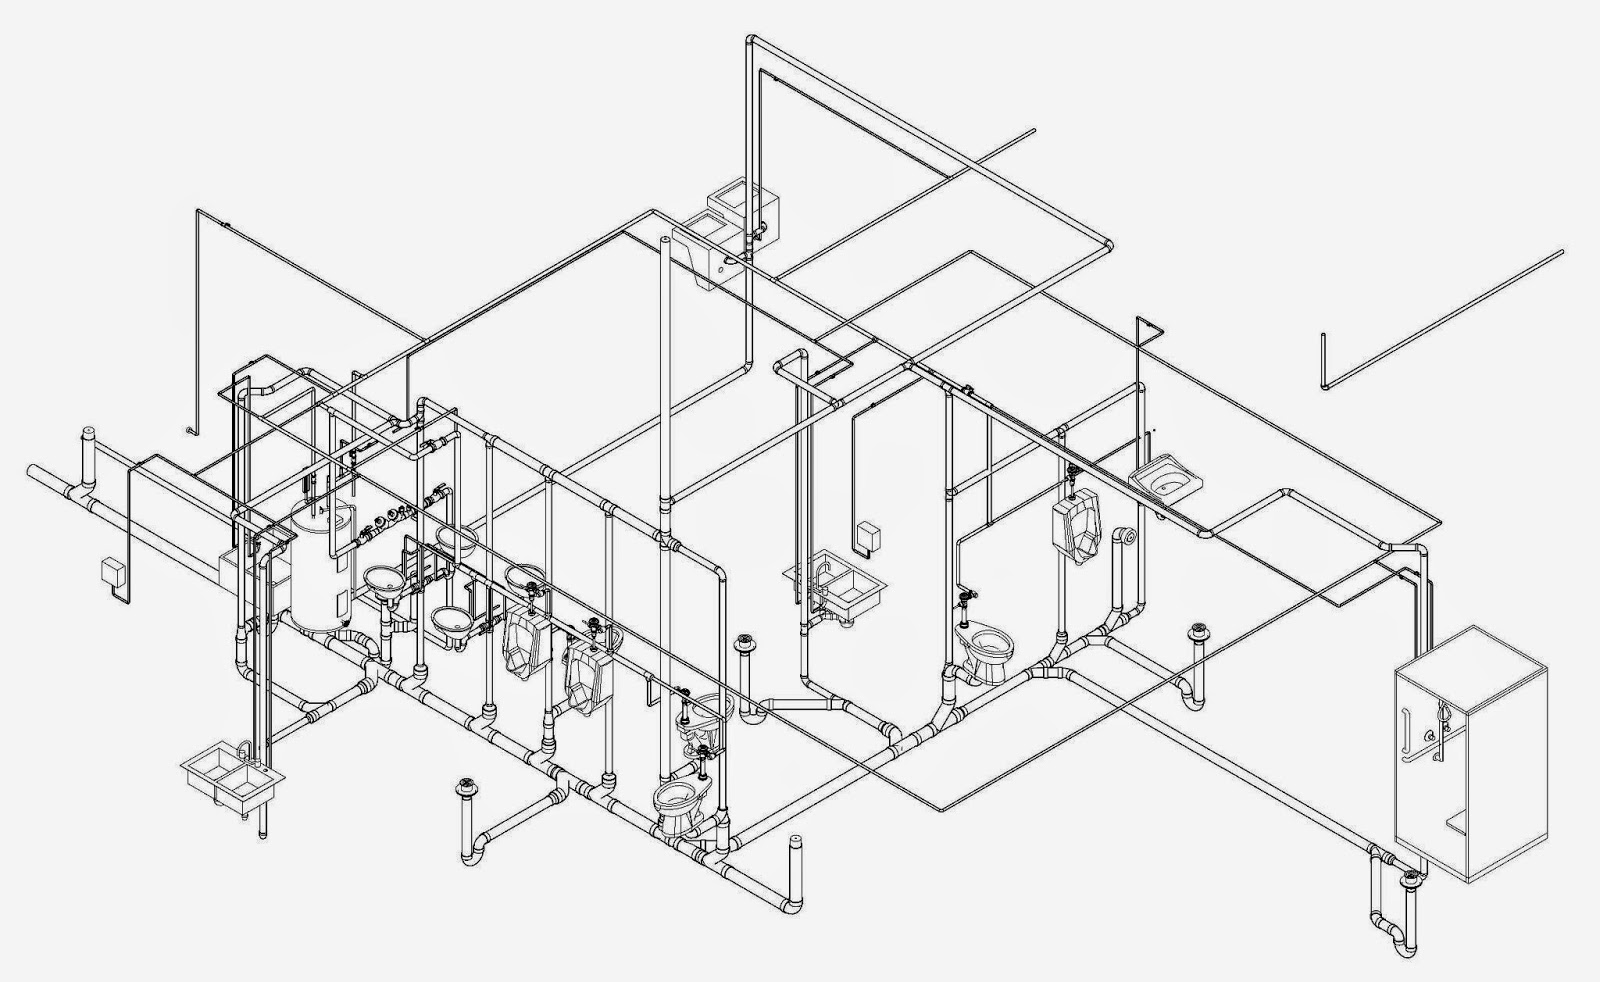 Plumbing contractor los angeles isometric plumbing sketch you can also purchase isometric graph paper or use printable graph paper isometric blueprint sketch plumbing contractor plumbingengineer pooptronica Image collections